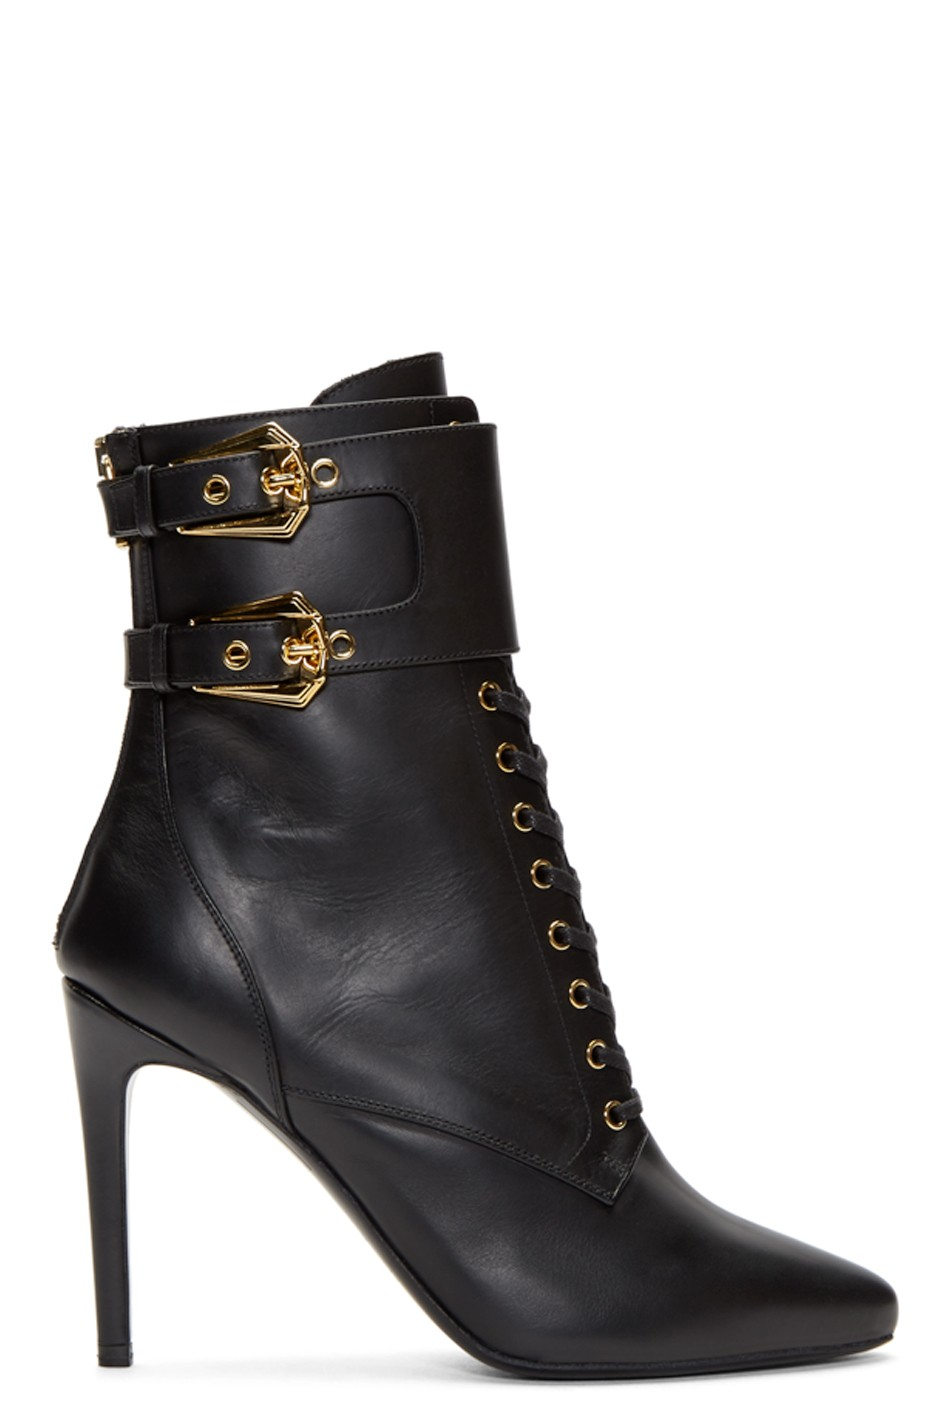 Balmain Black Leather Nina Ranger Boots